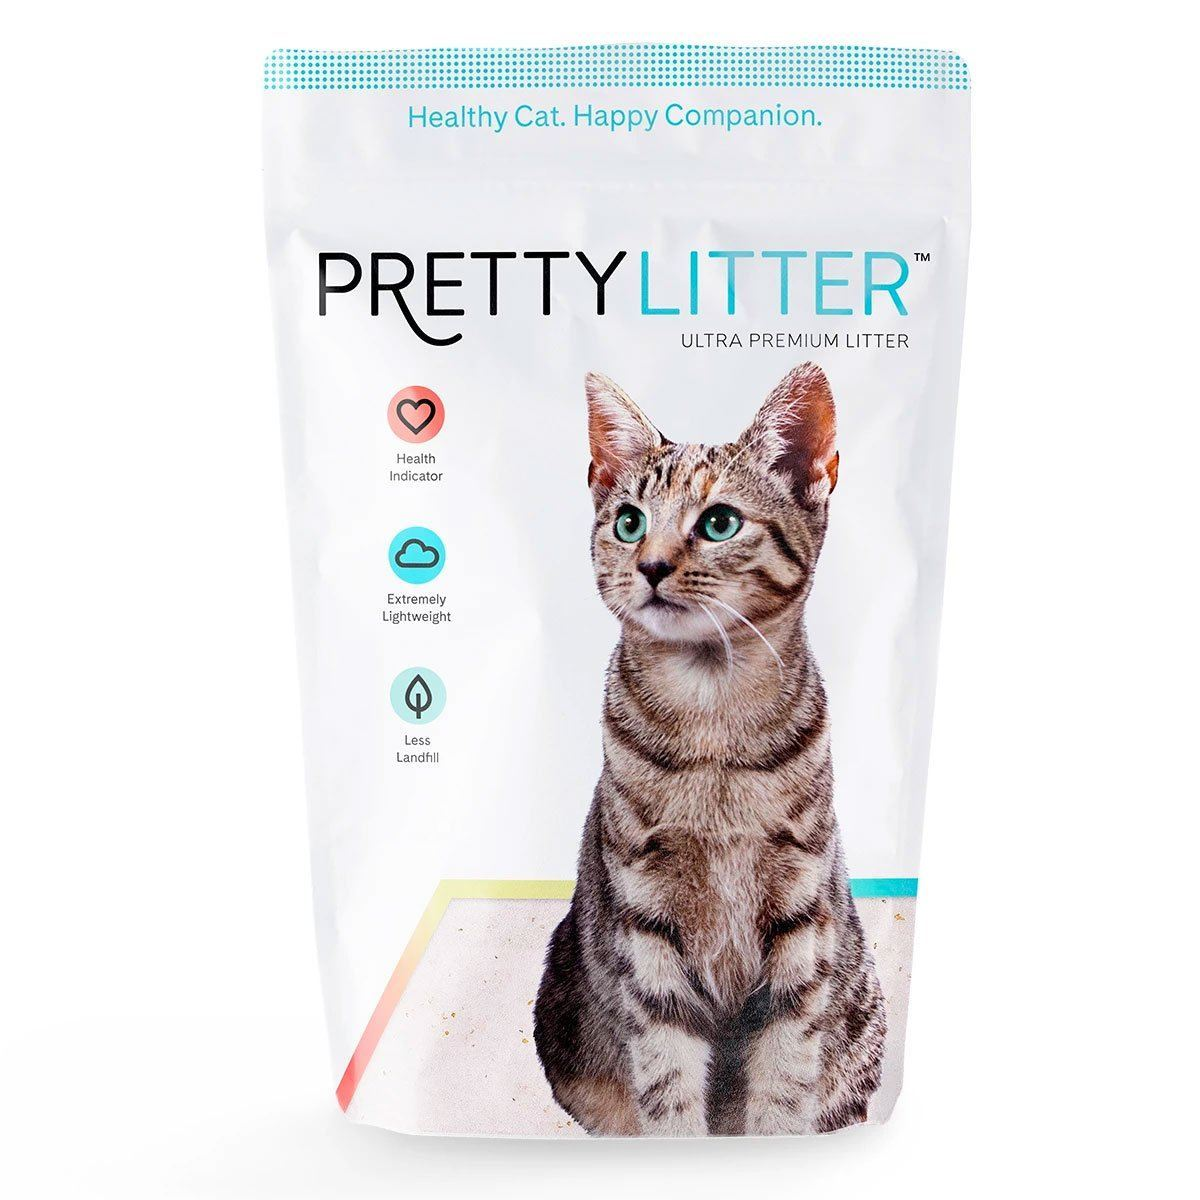 PrettyLitter Quarterly Subscription